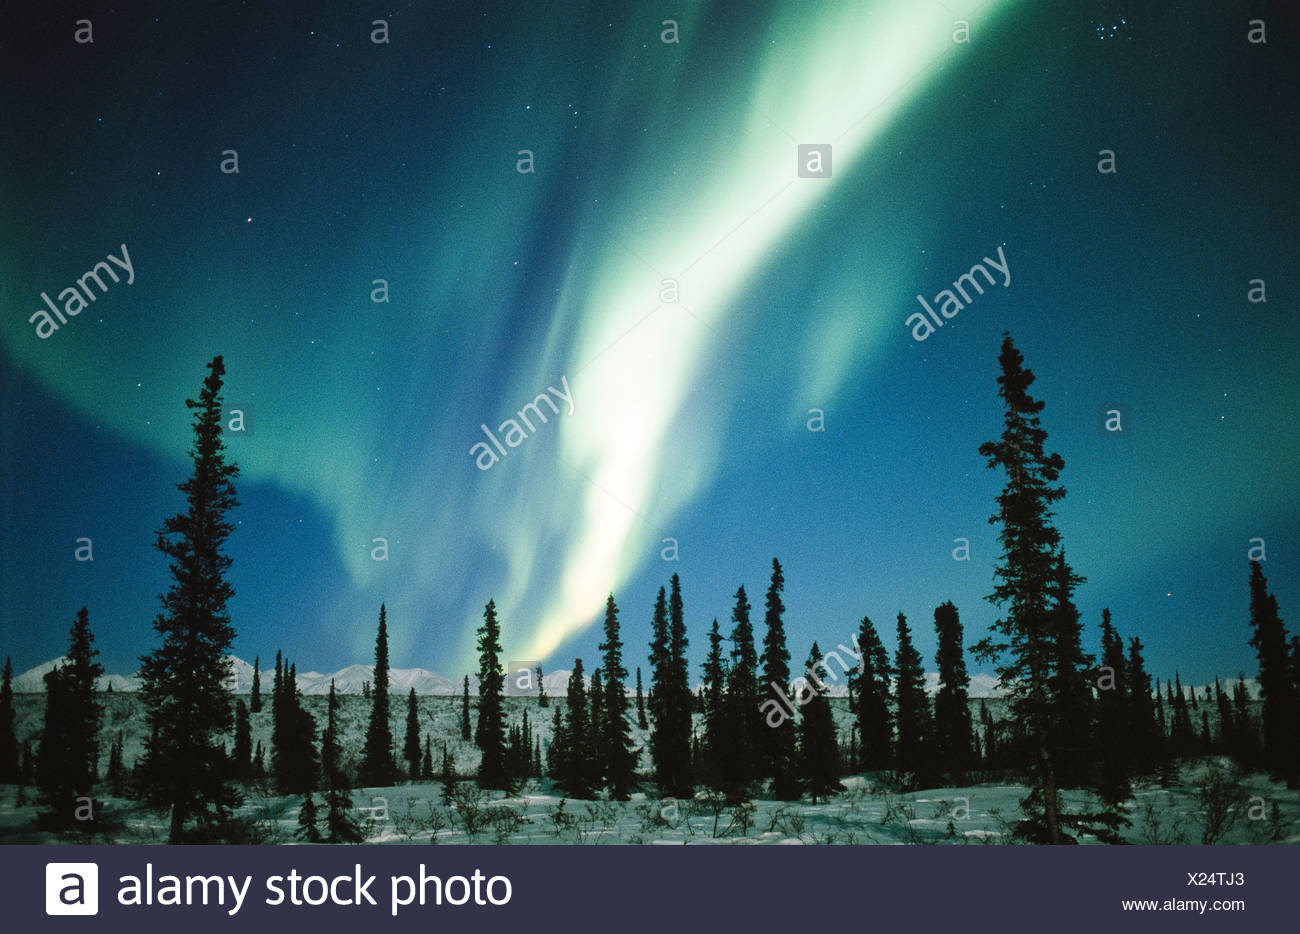 Alaska. Silhouetted trees rise up before the Aurora Borealis. - Stock Image